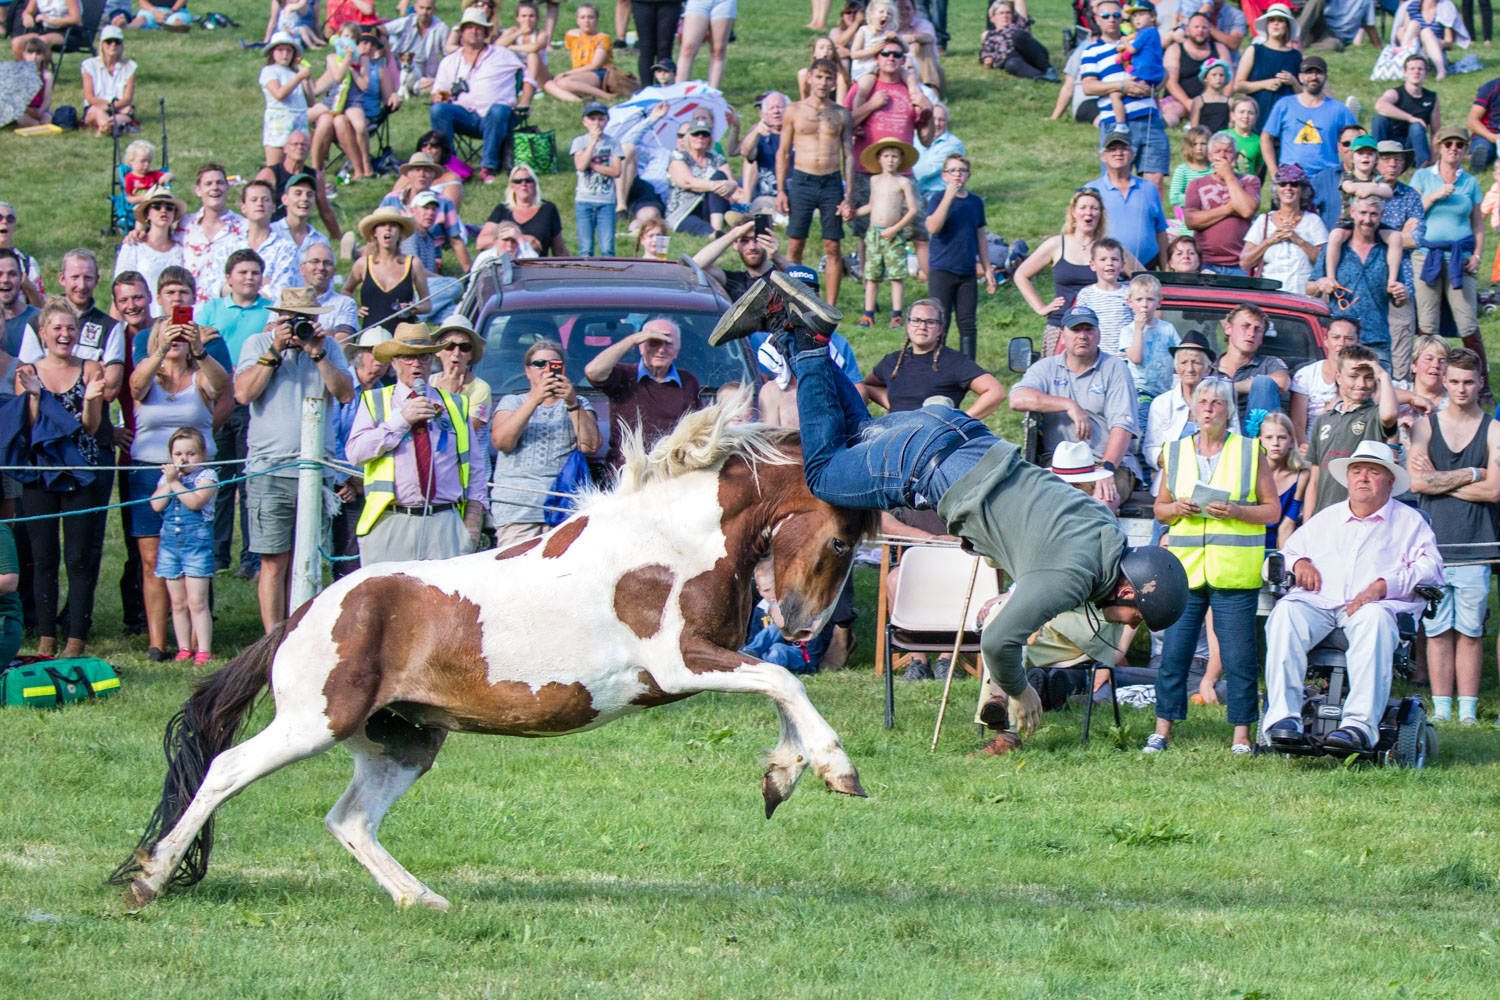 Image: A guy falling off a horse, Llanthony Show, Brecon Beacons, Wales © Jeremy Flint